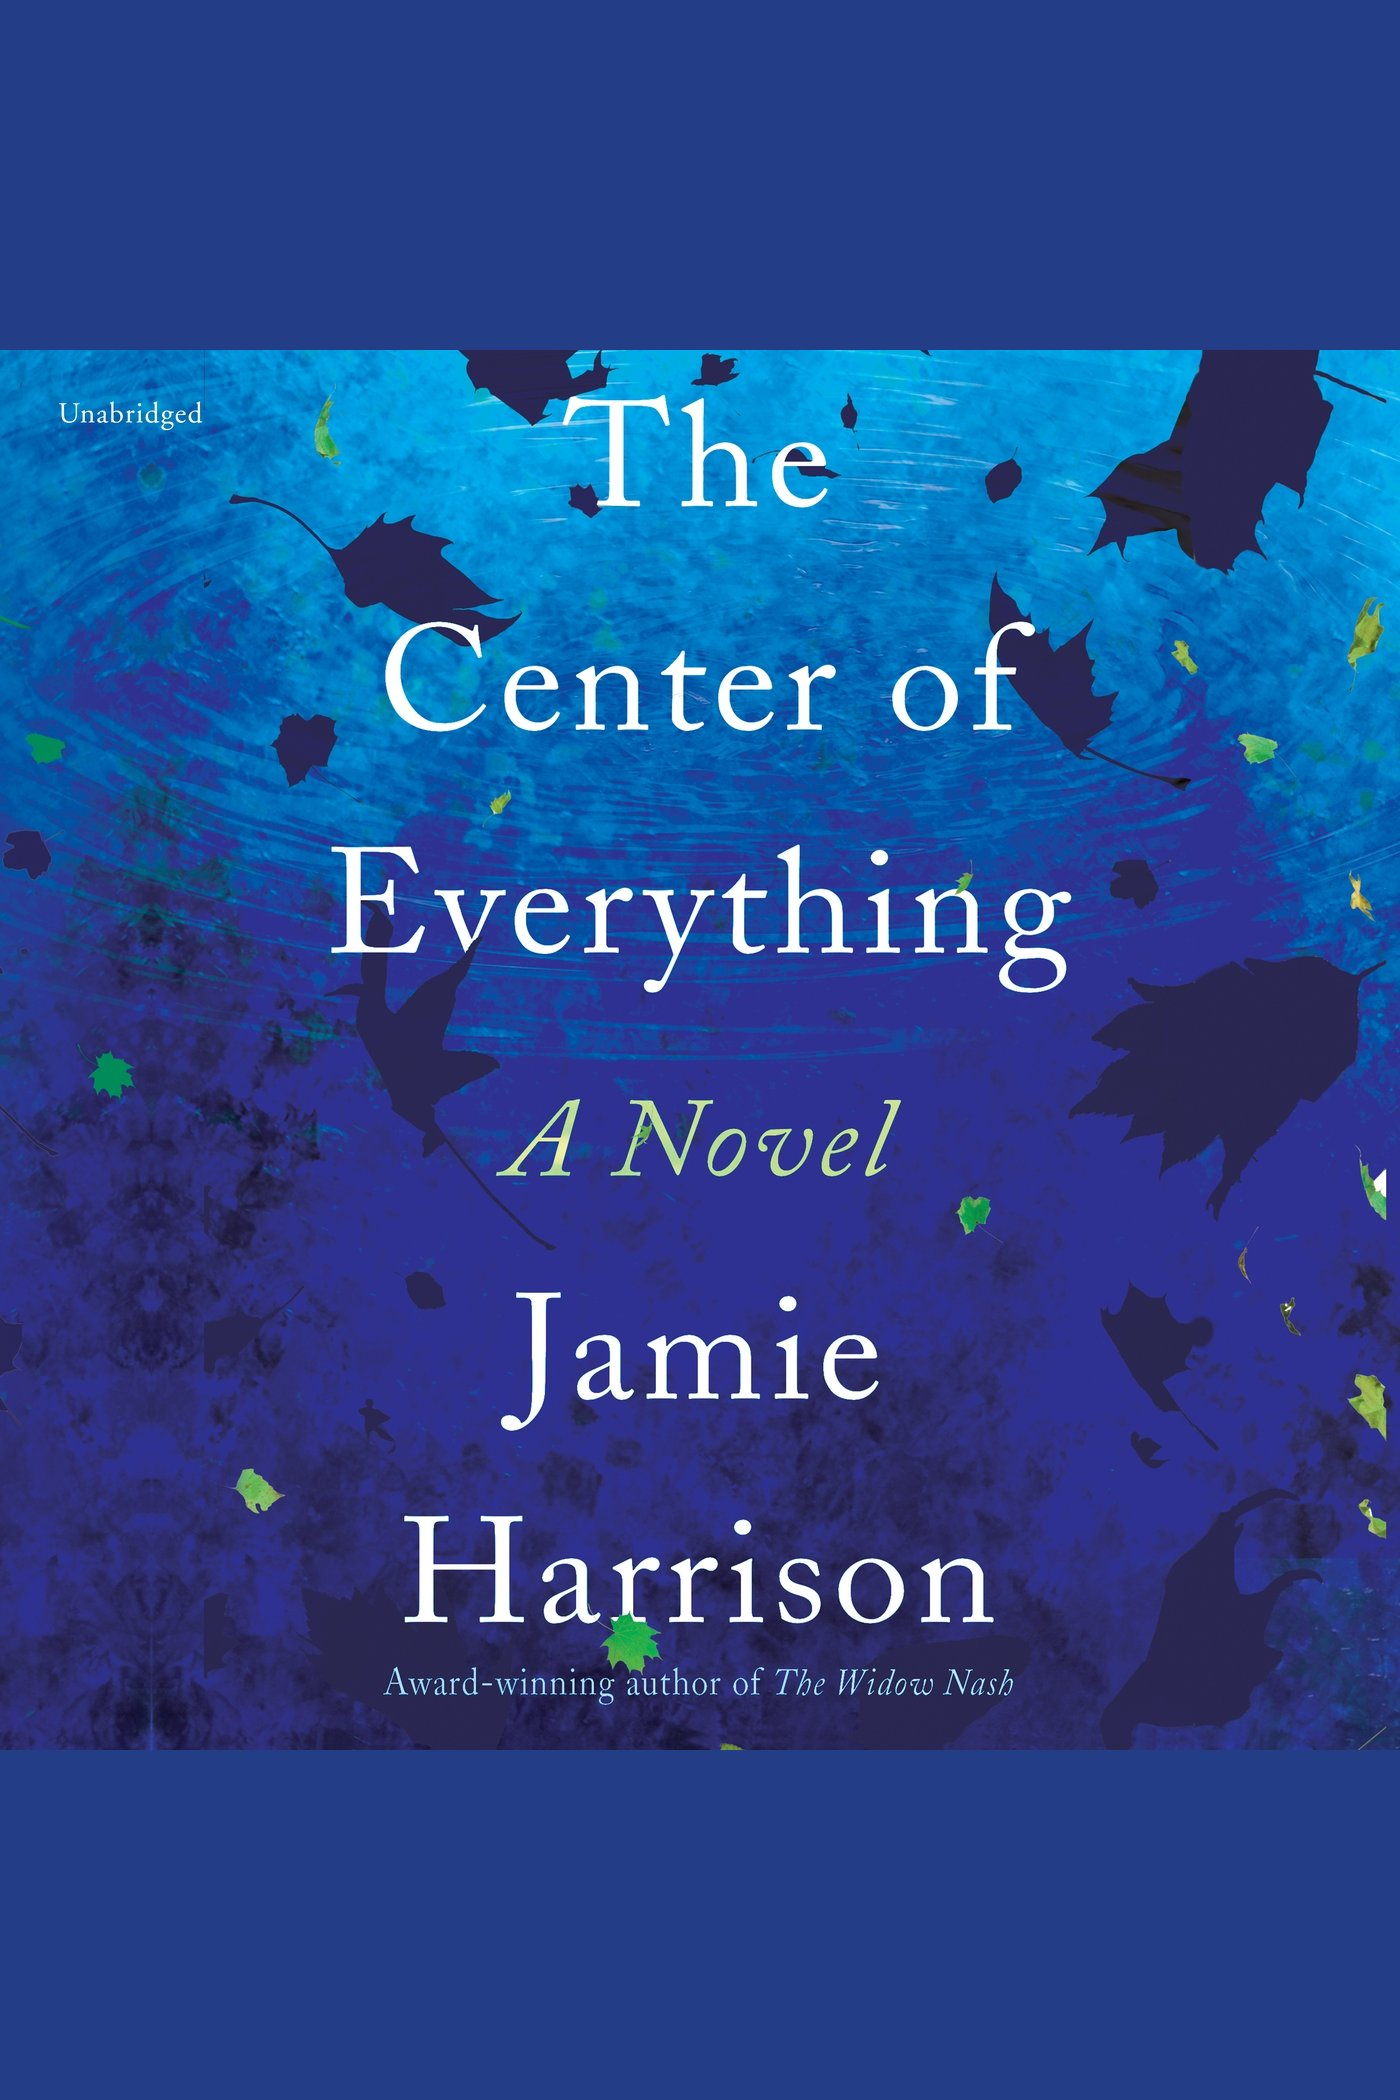 Center of Everything, The A Novel